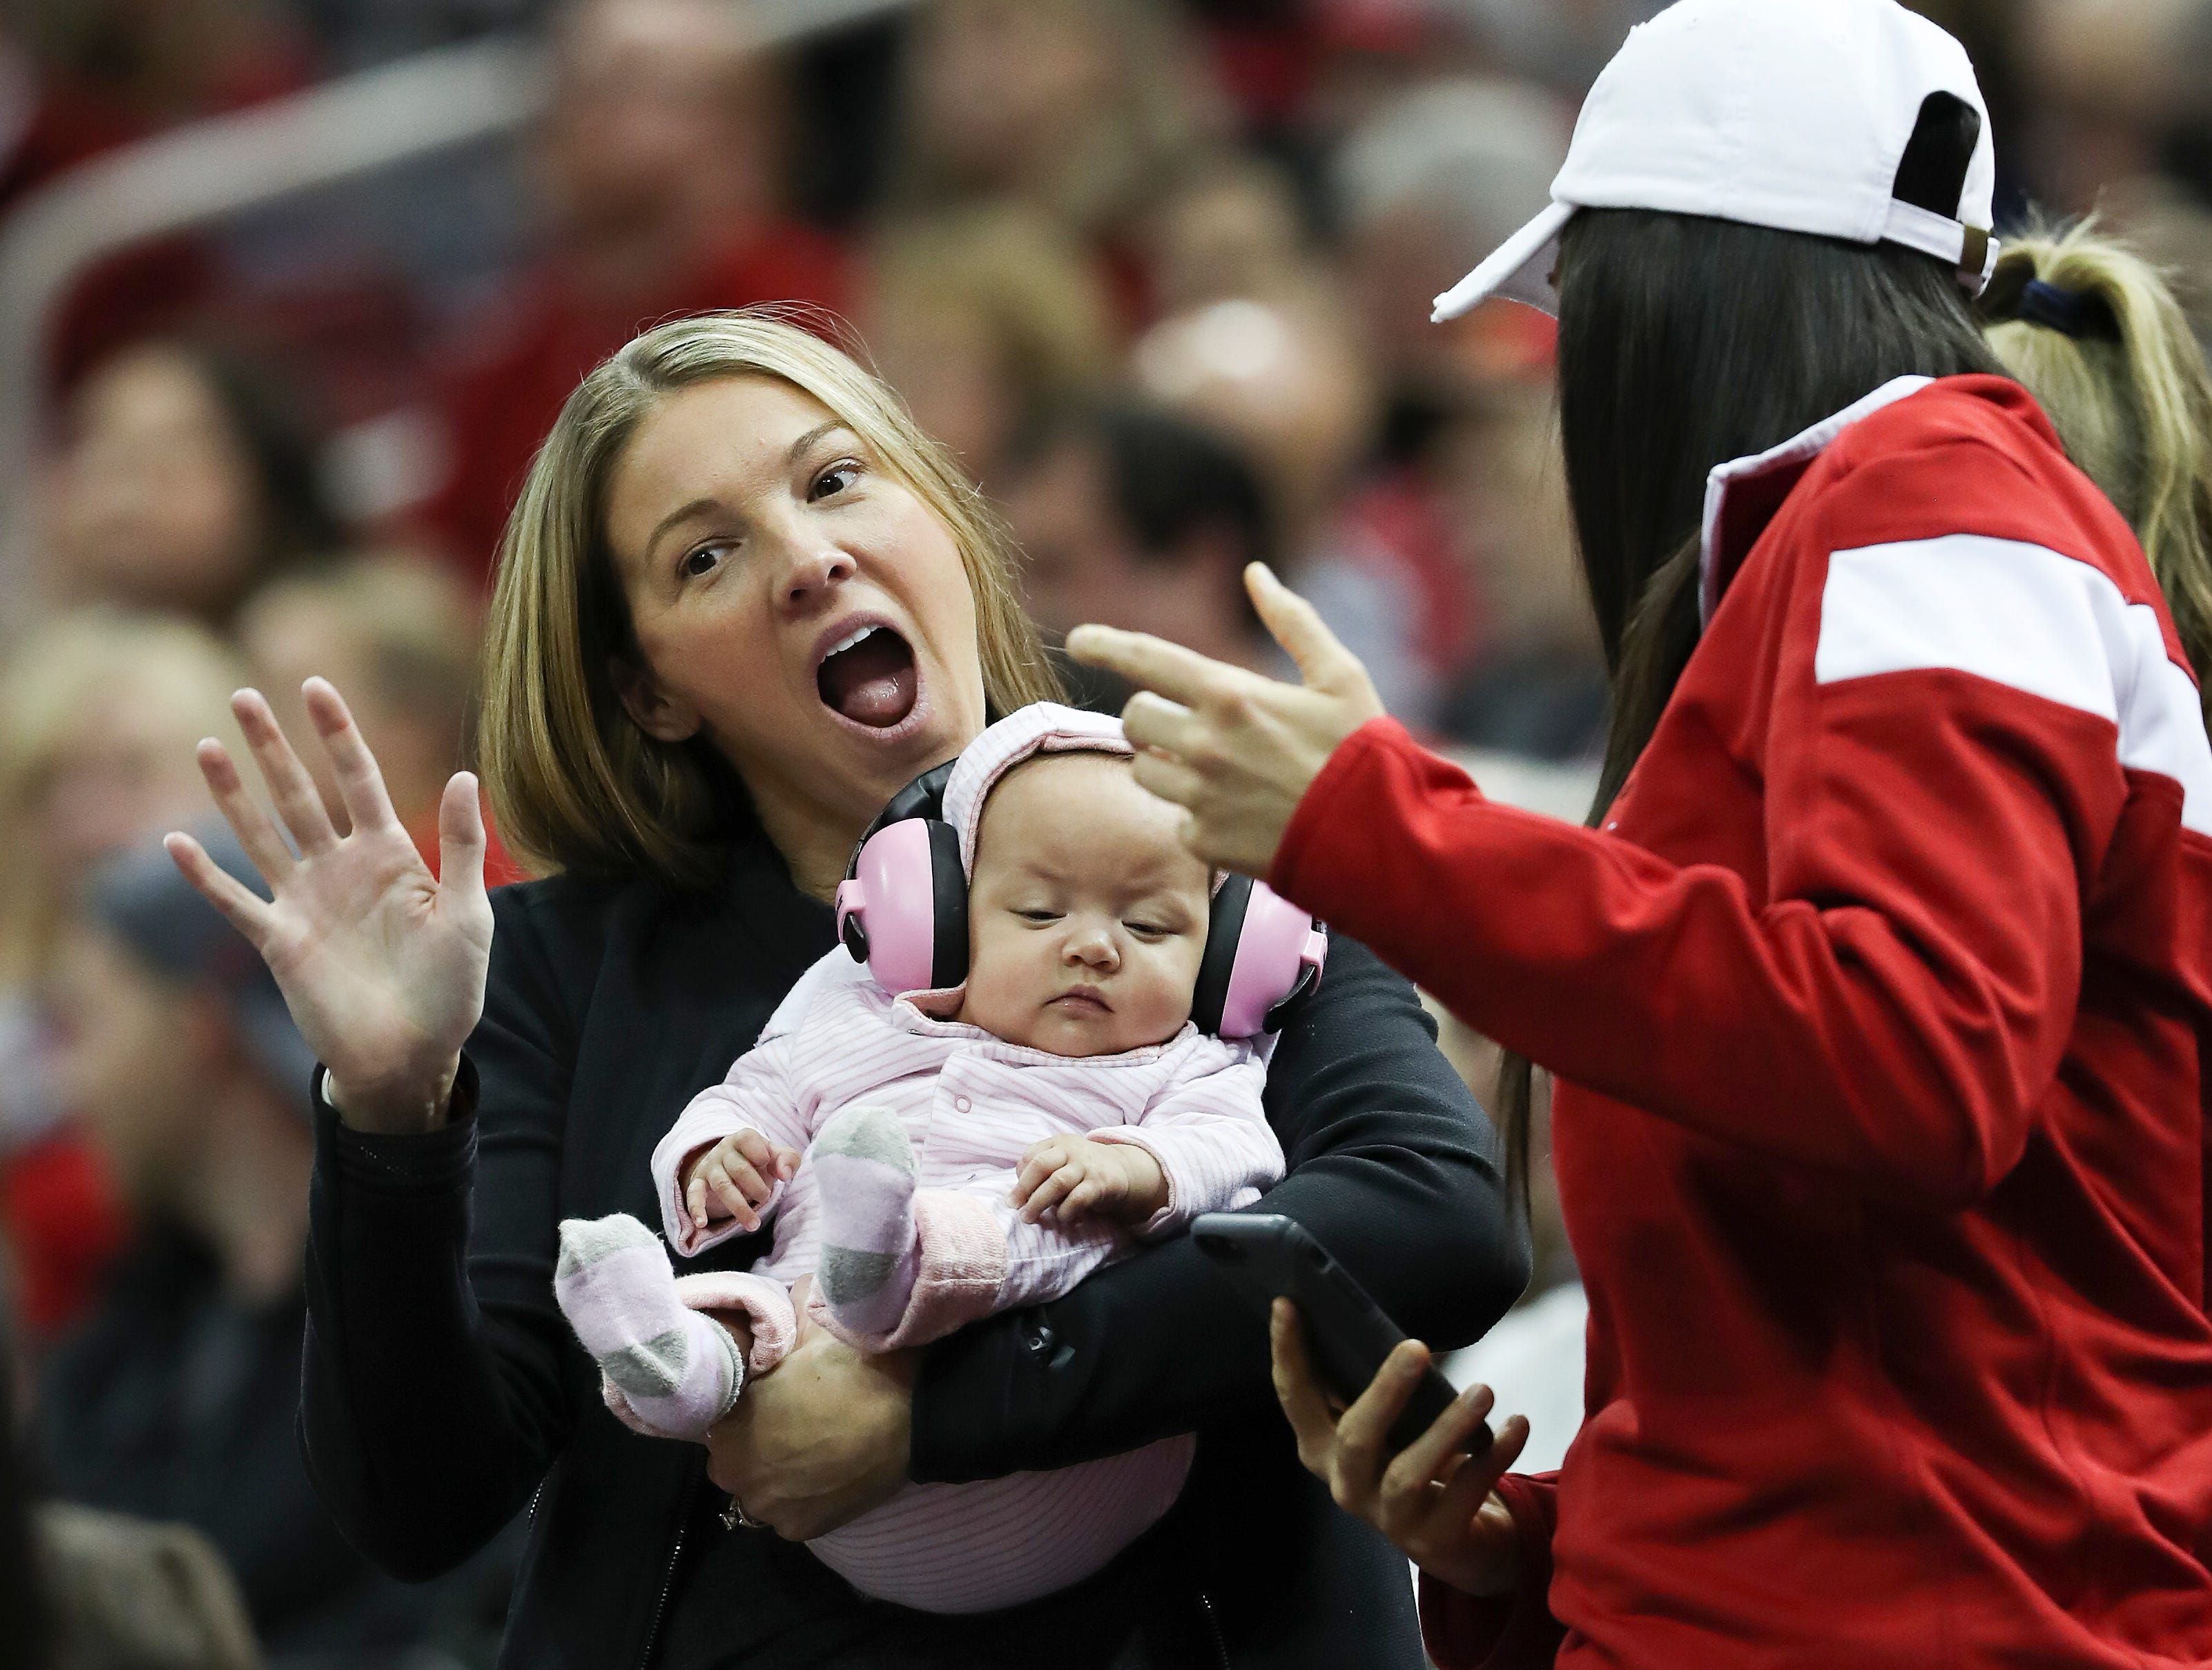 Christi Mack, wife of Louisville's head coach Chris Mack, held a baby during the Central Arkansas game at the Yum Center.  